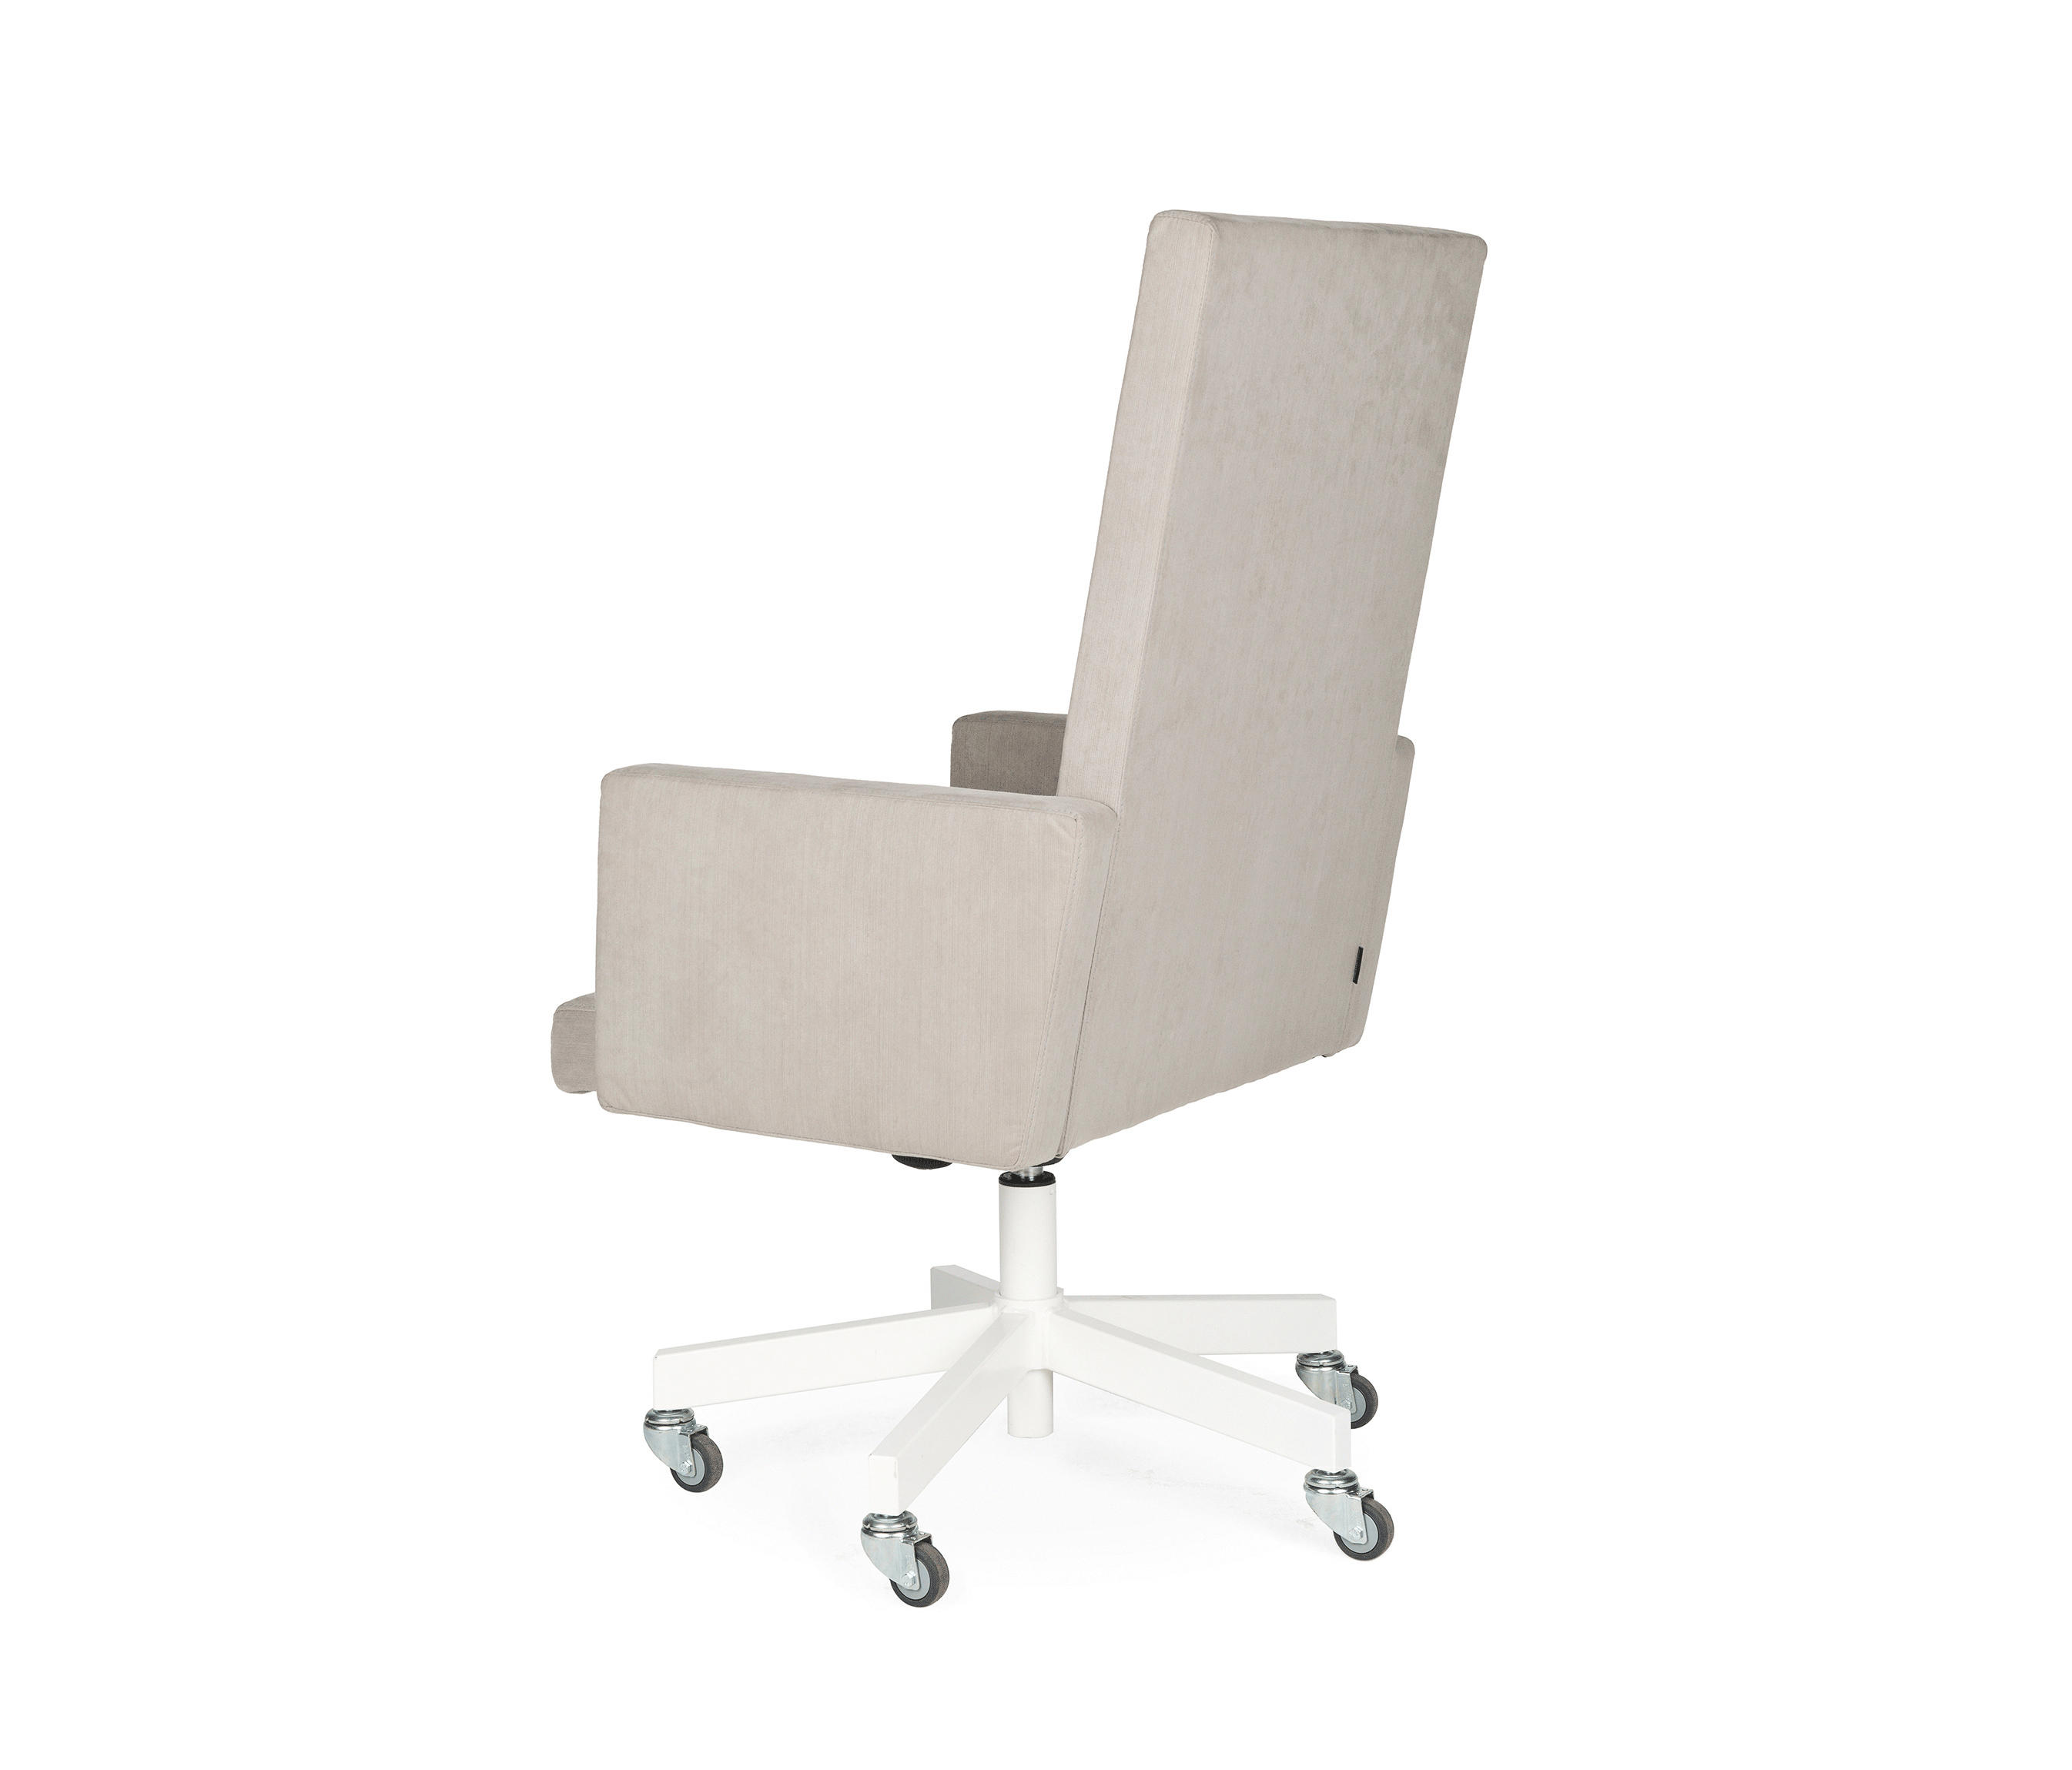 avl presidential chair chairs from lensvelt architonic